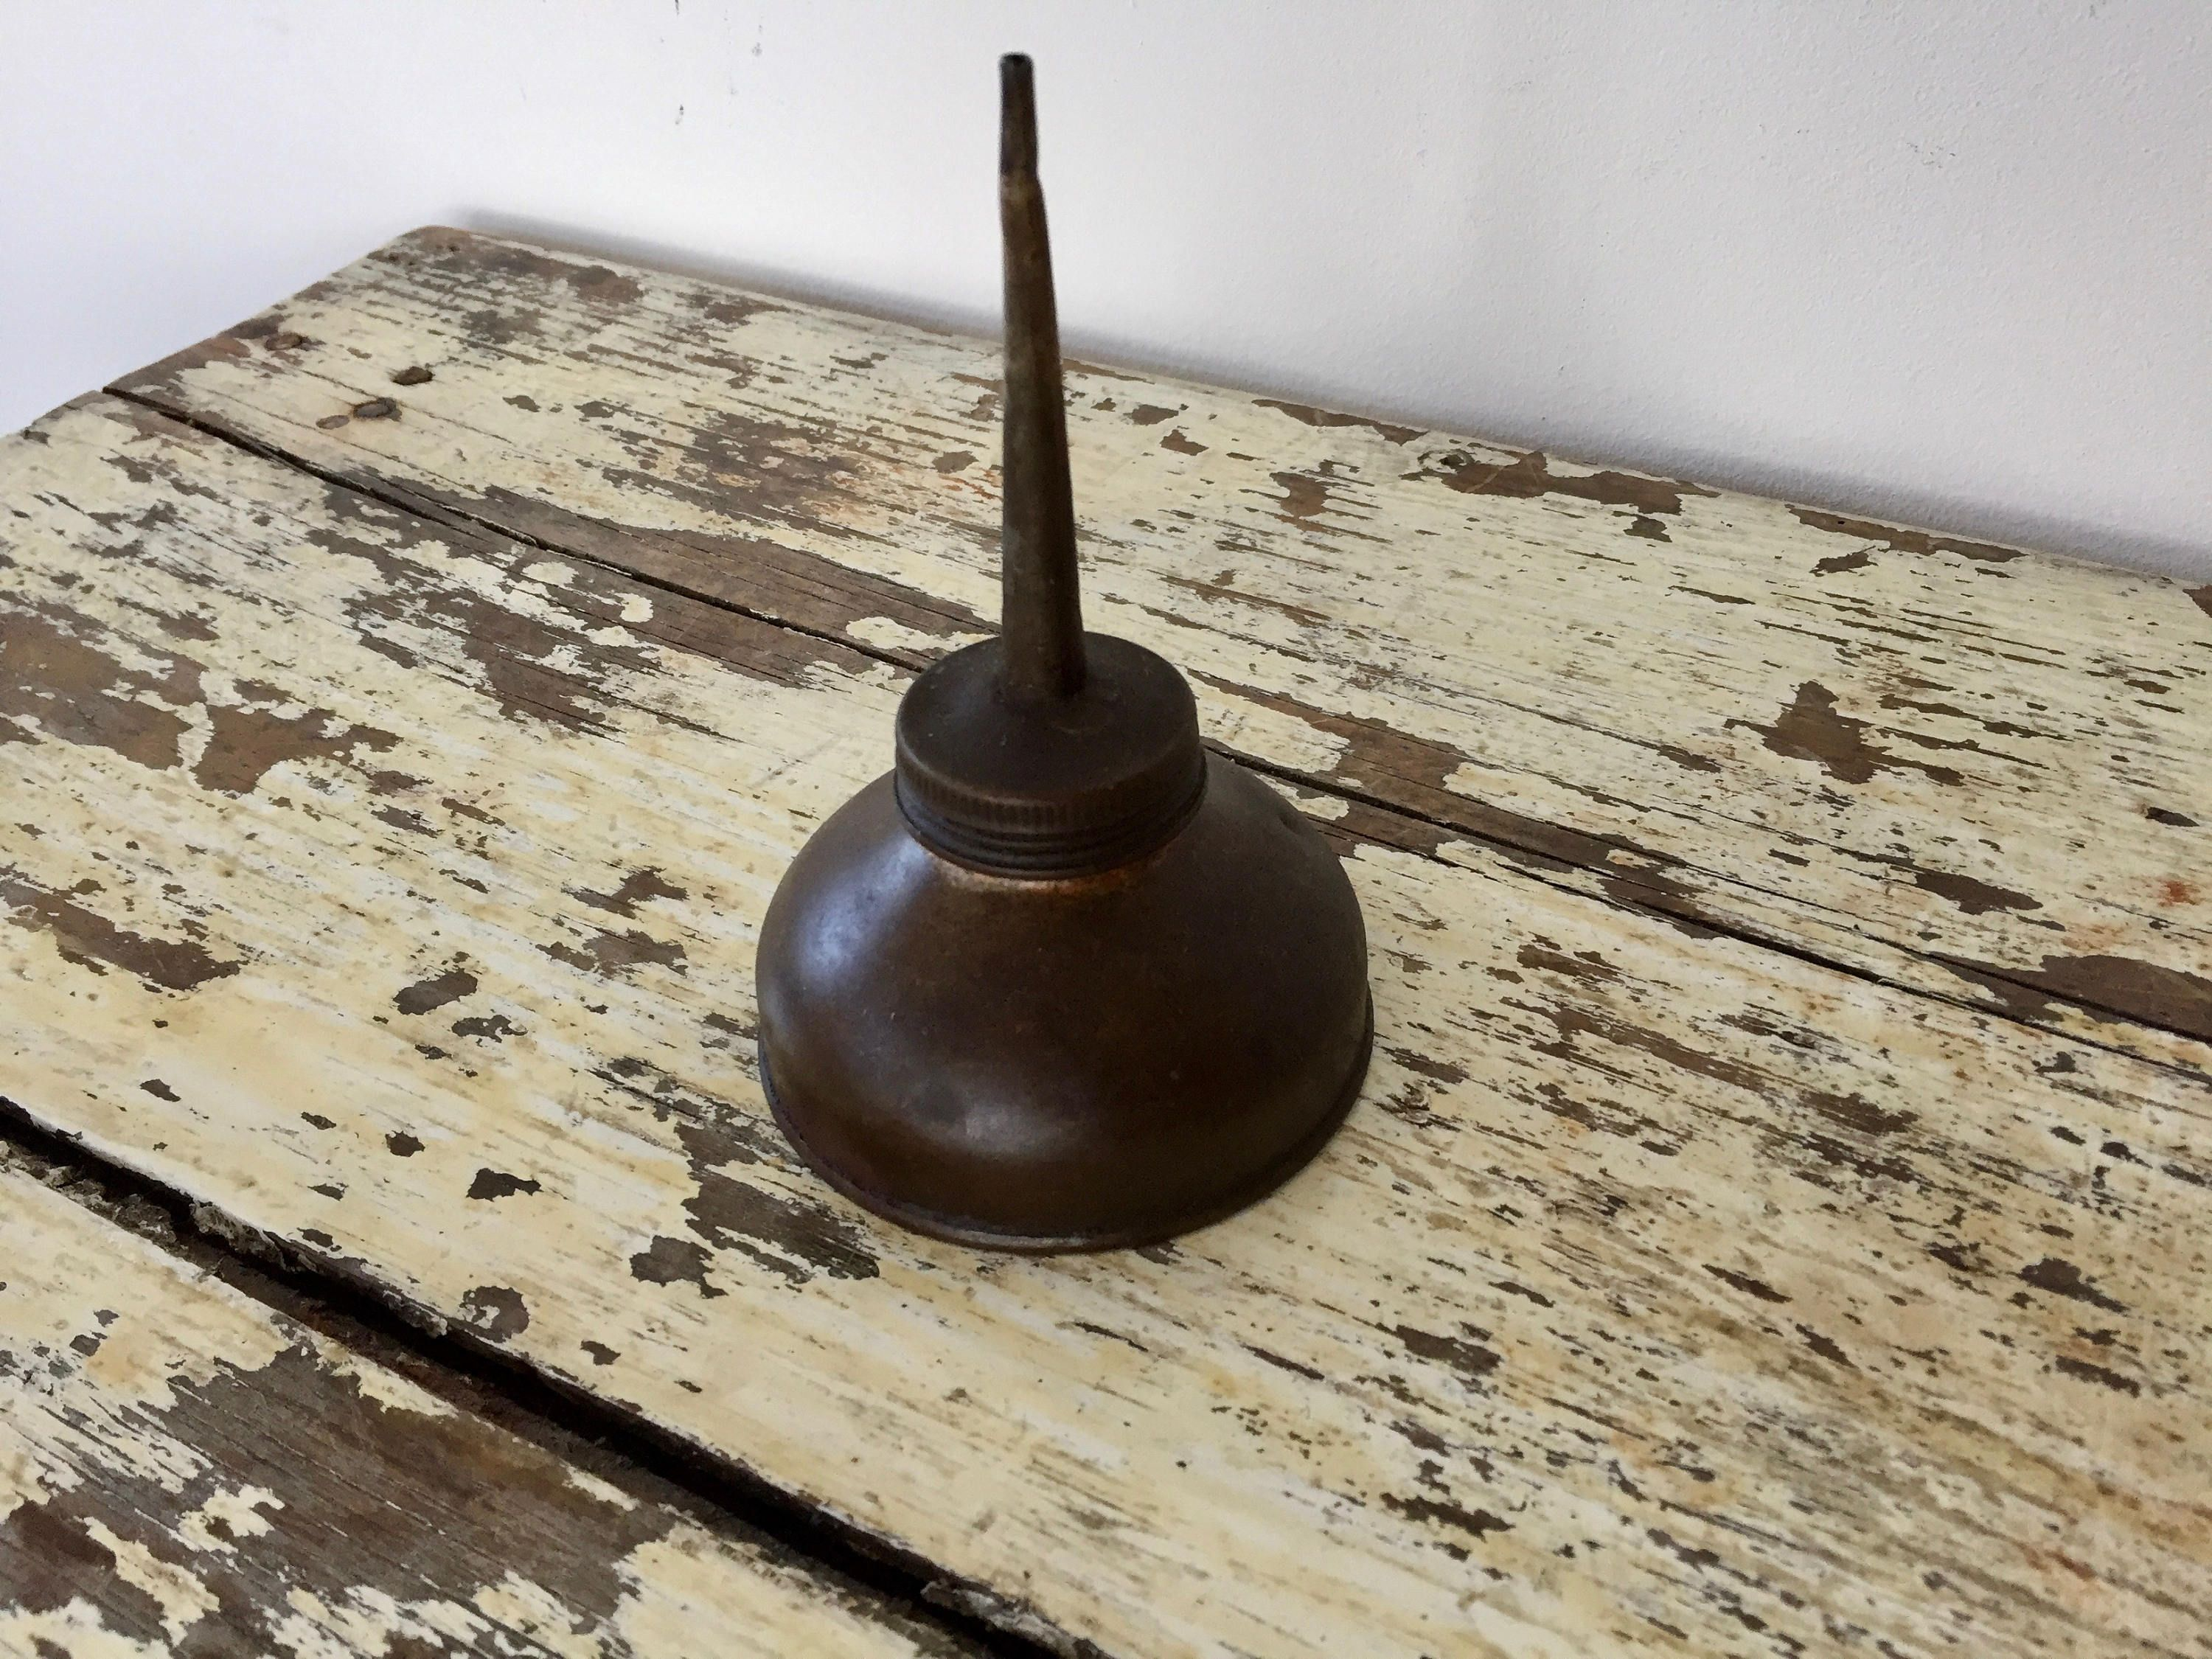 Vintage OIL CAN, Metal Oil Can, Rustic Steampunk Industrial